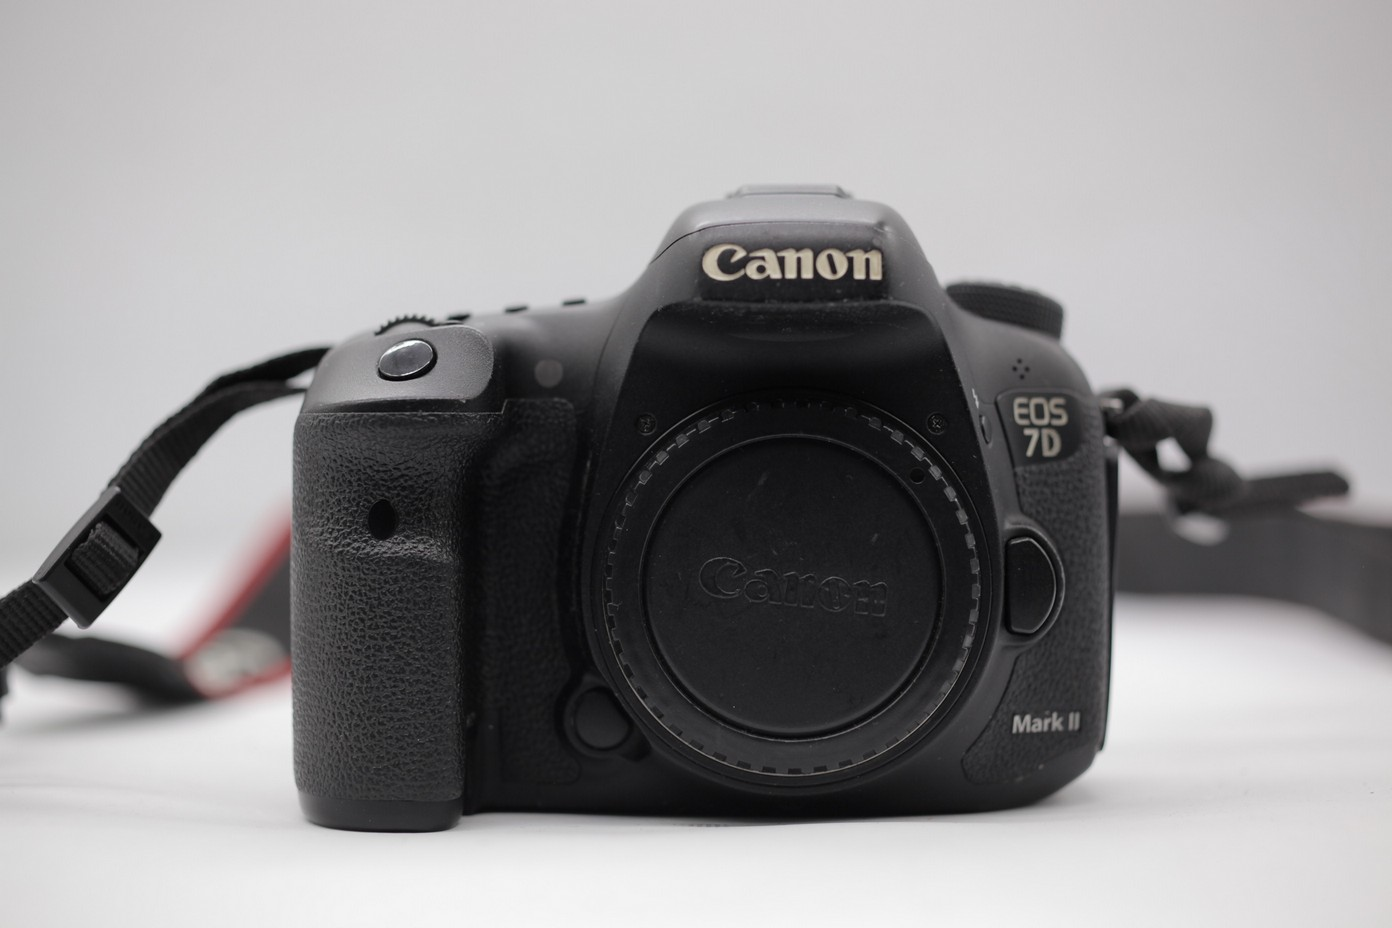 Used - Canon EOS 7D Mark II (Body Only)